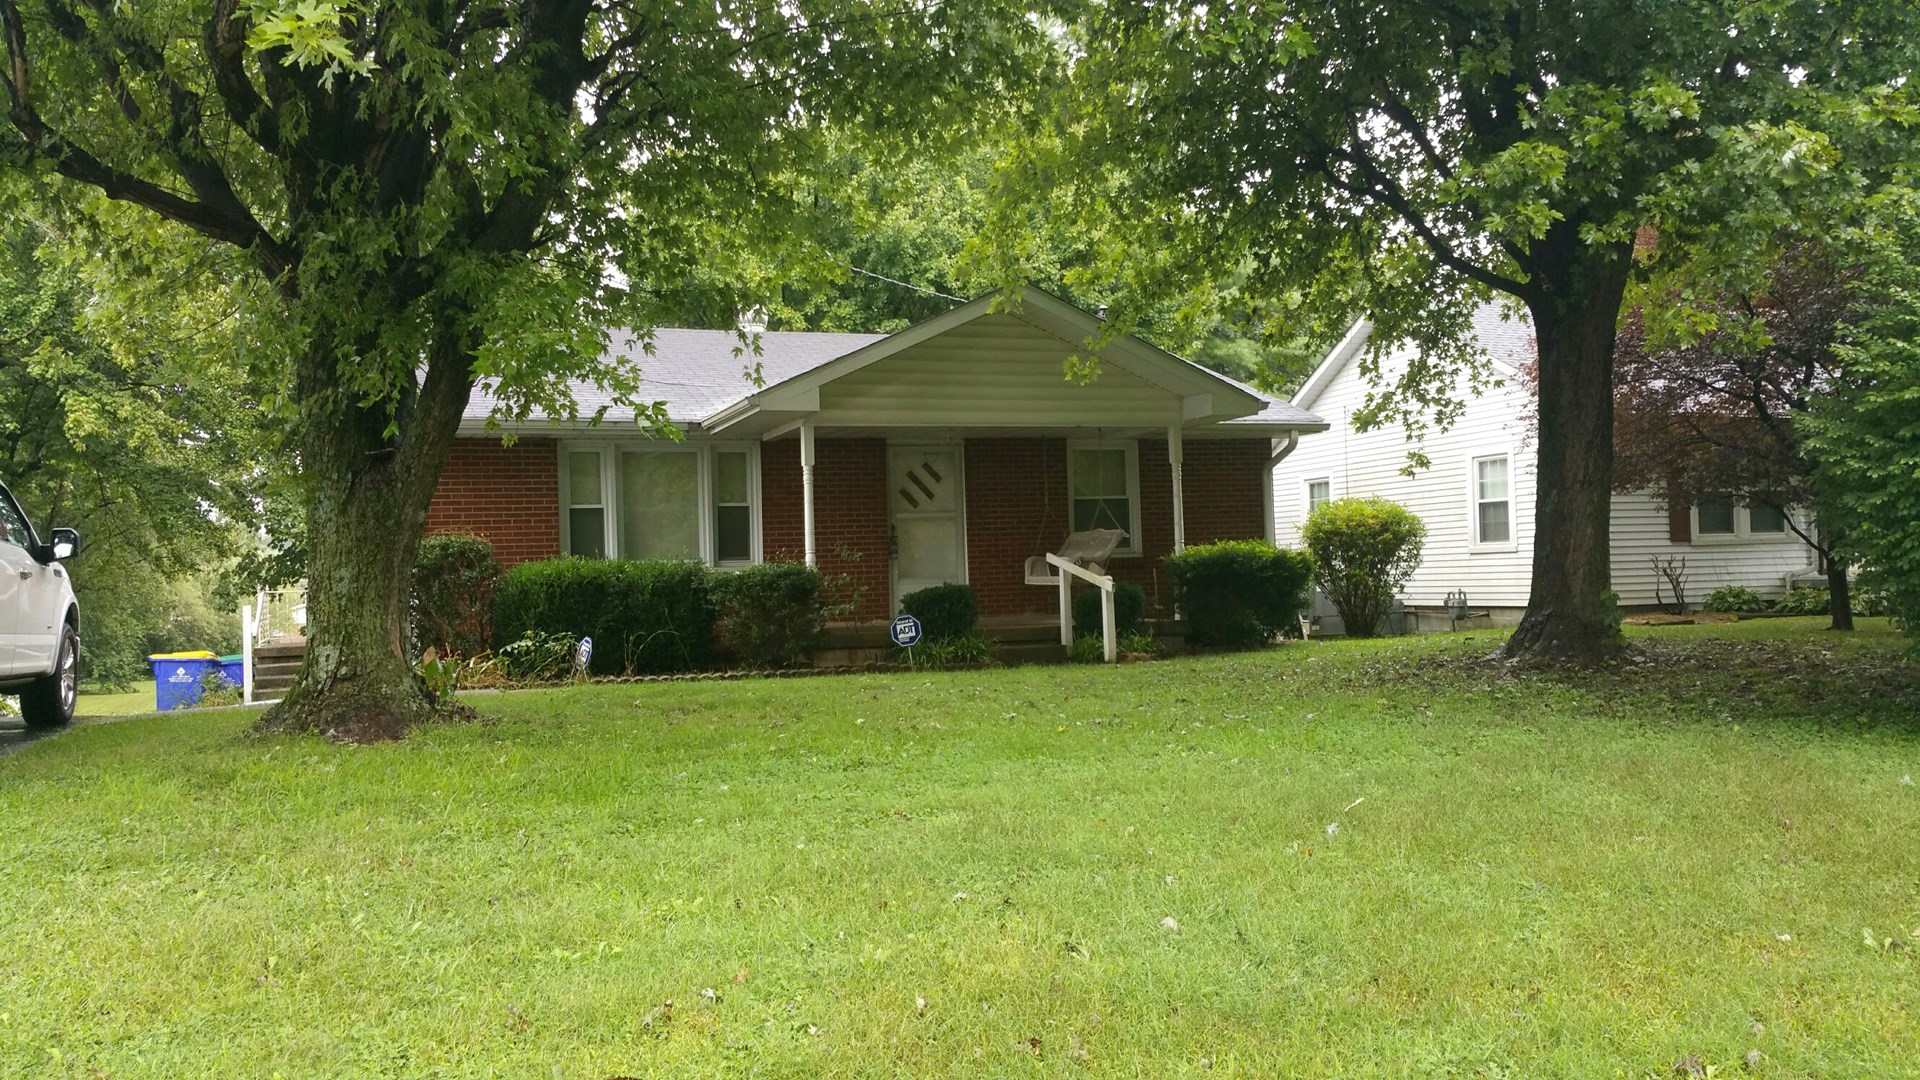 Cute 2 bedroom home for sale in Franklin, Ky.